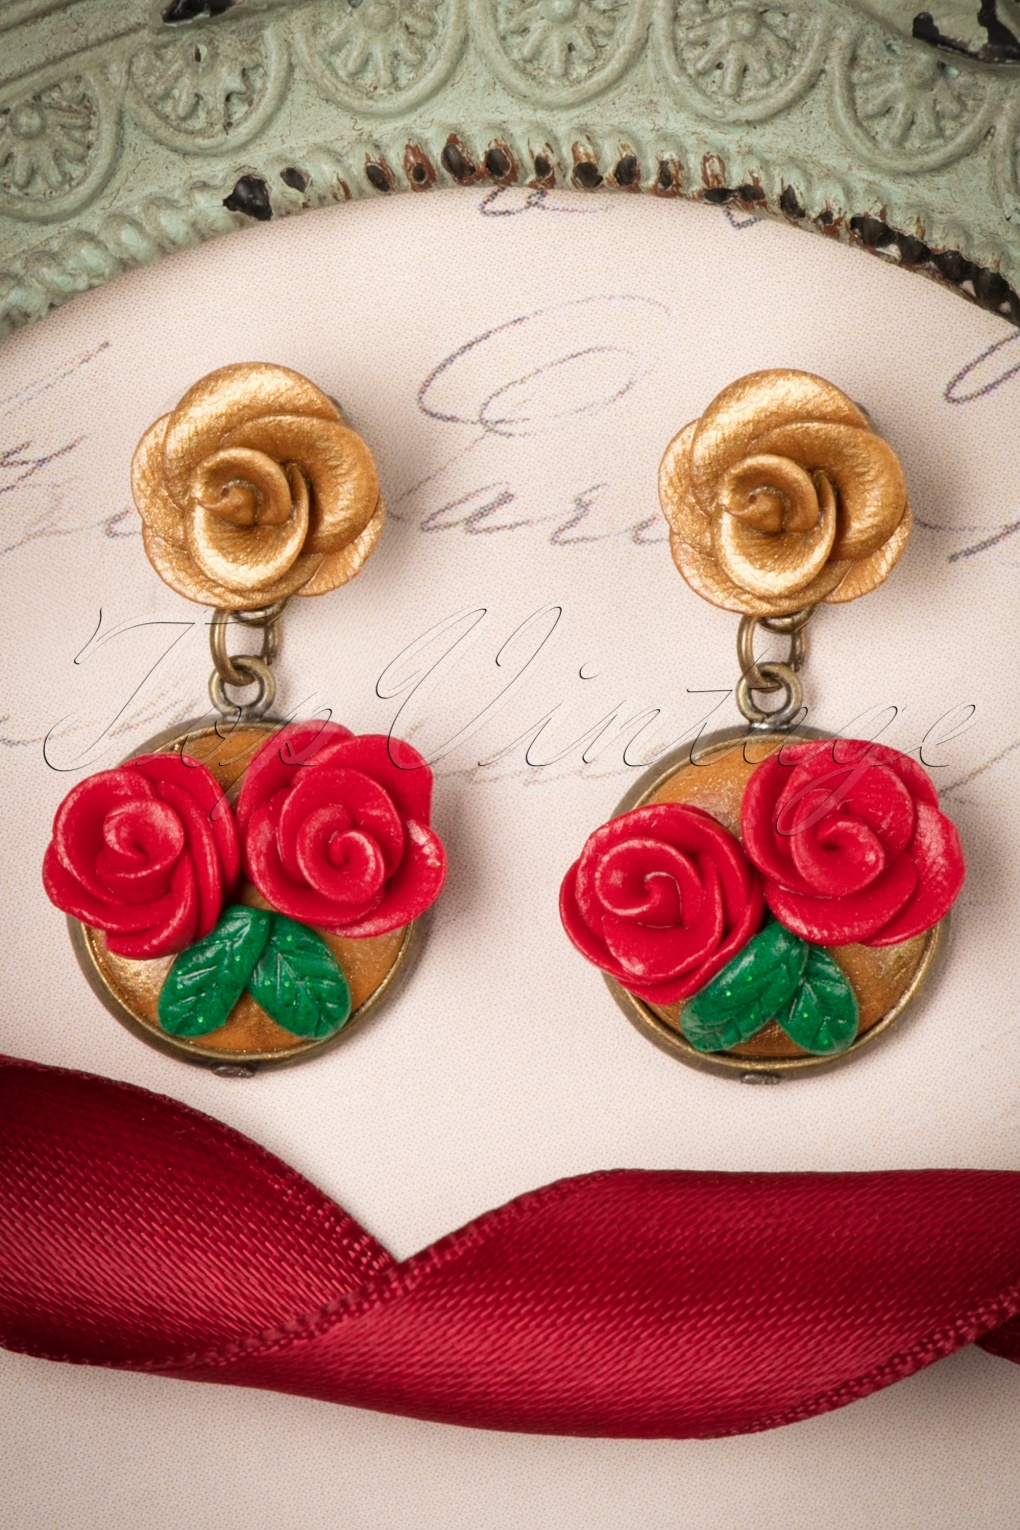 1940s Costume Jewelry: Necklaces, Earrings, Brooch, Bracelets 40s Romantic Roses Earrings in Gold and Red £13.06 AT vintagedancer.com